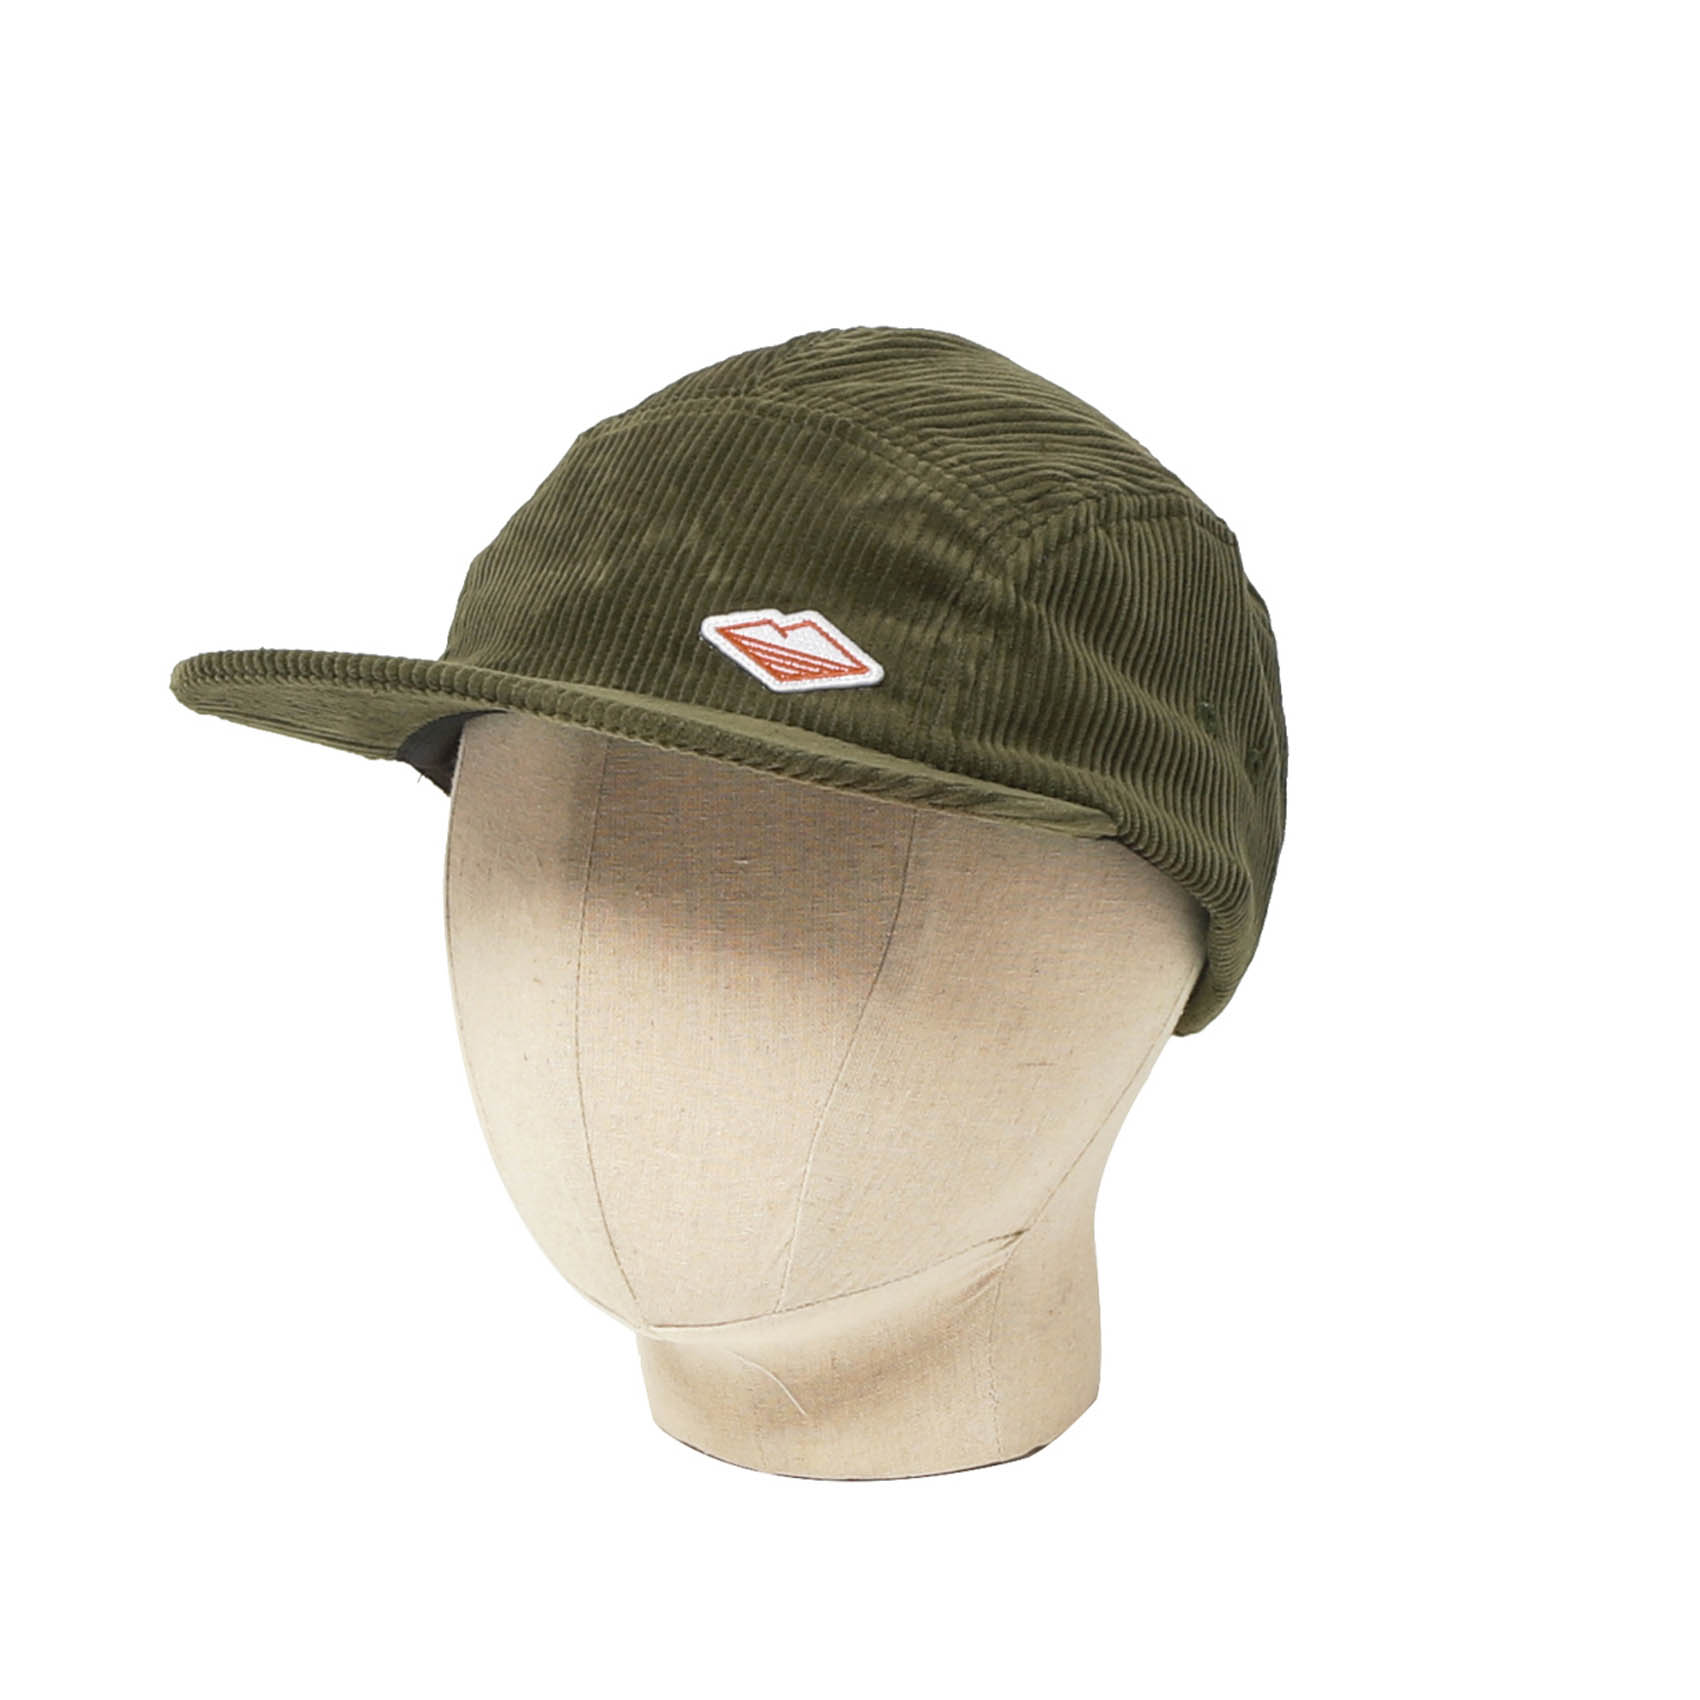 TRAVEL CAP - OLIVE CORDUROY